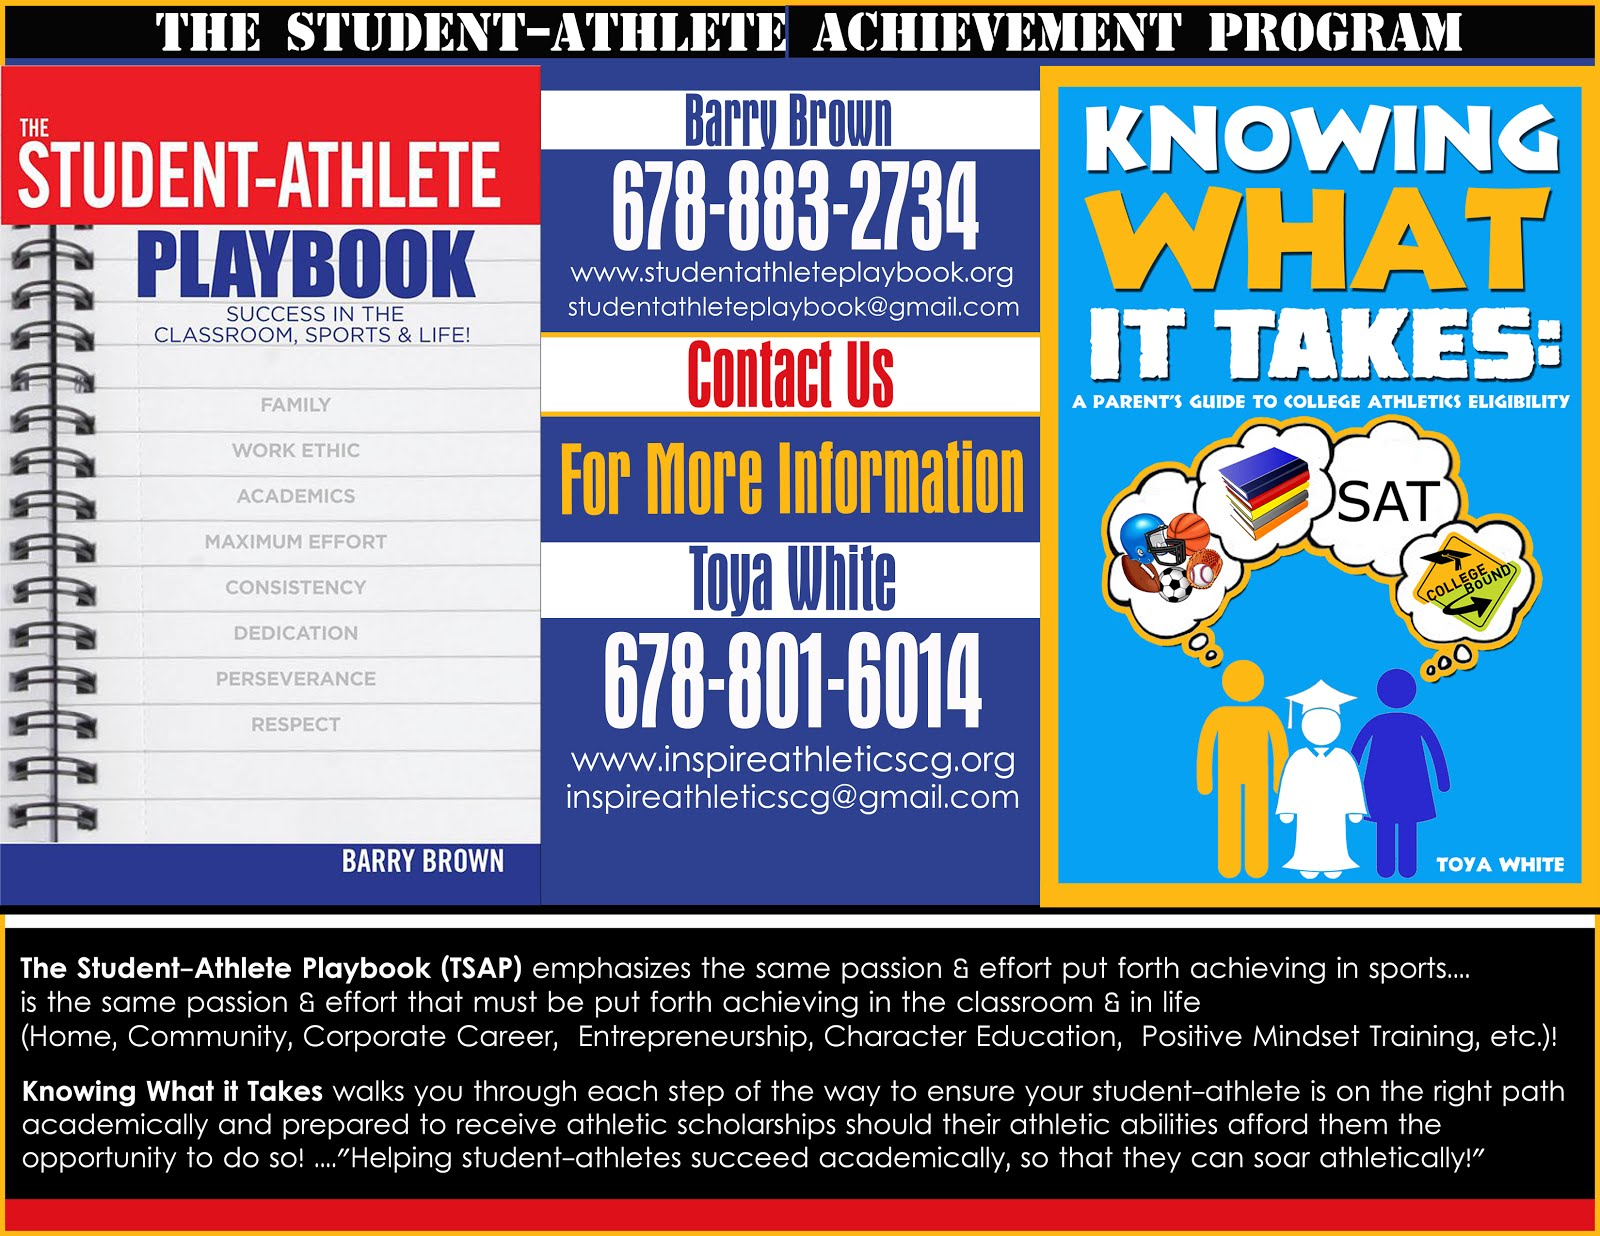 THE STUDENT-ATHLETE ACHIEVEMENT PROGRAM (TSAAP)